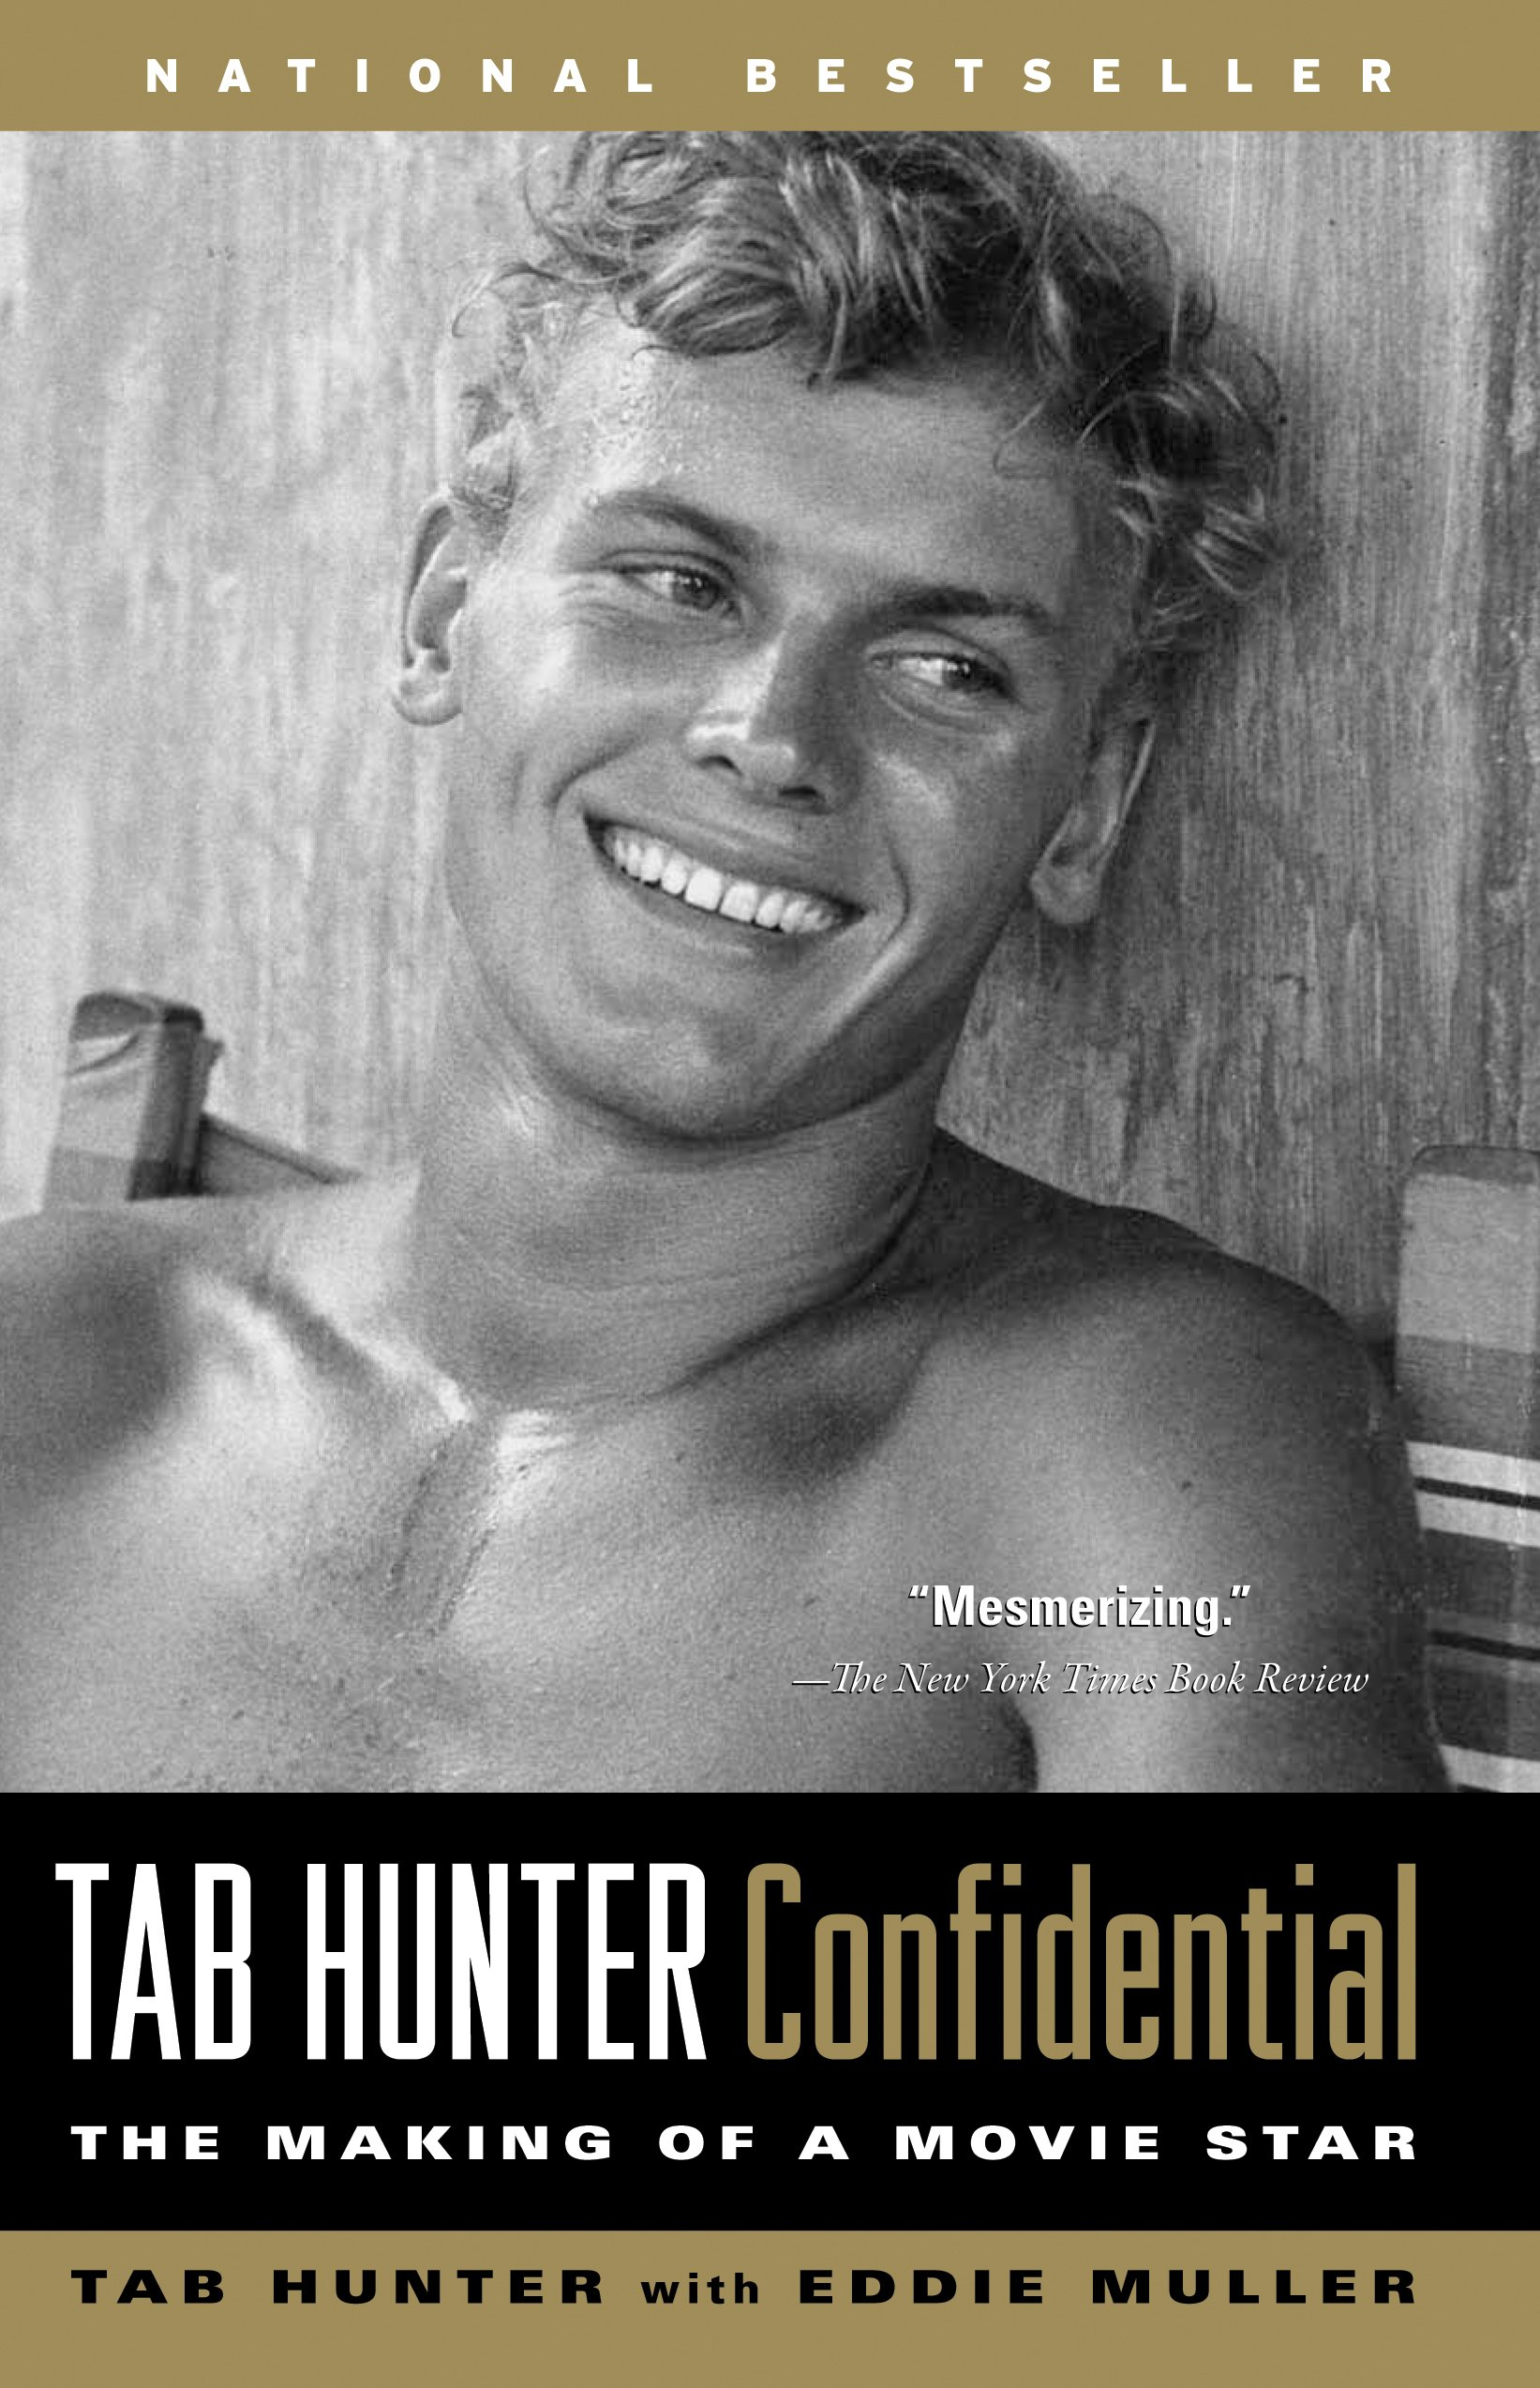 Image result for which modern actor resembles tab hunter